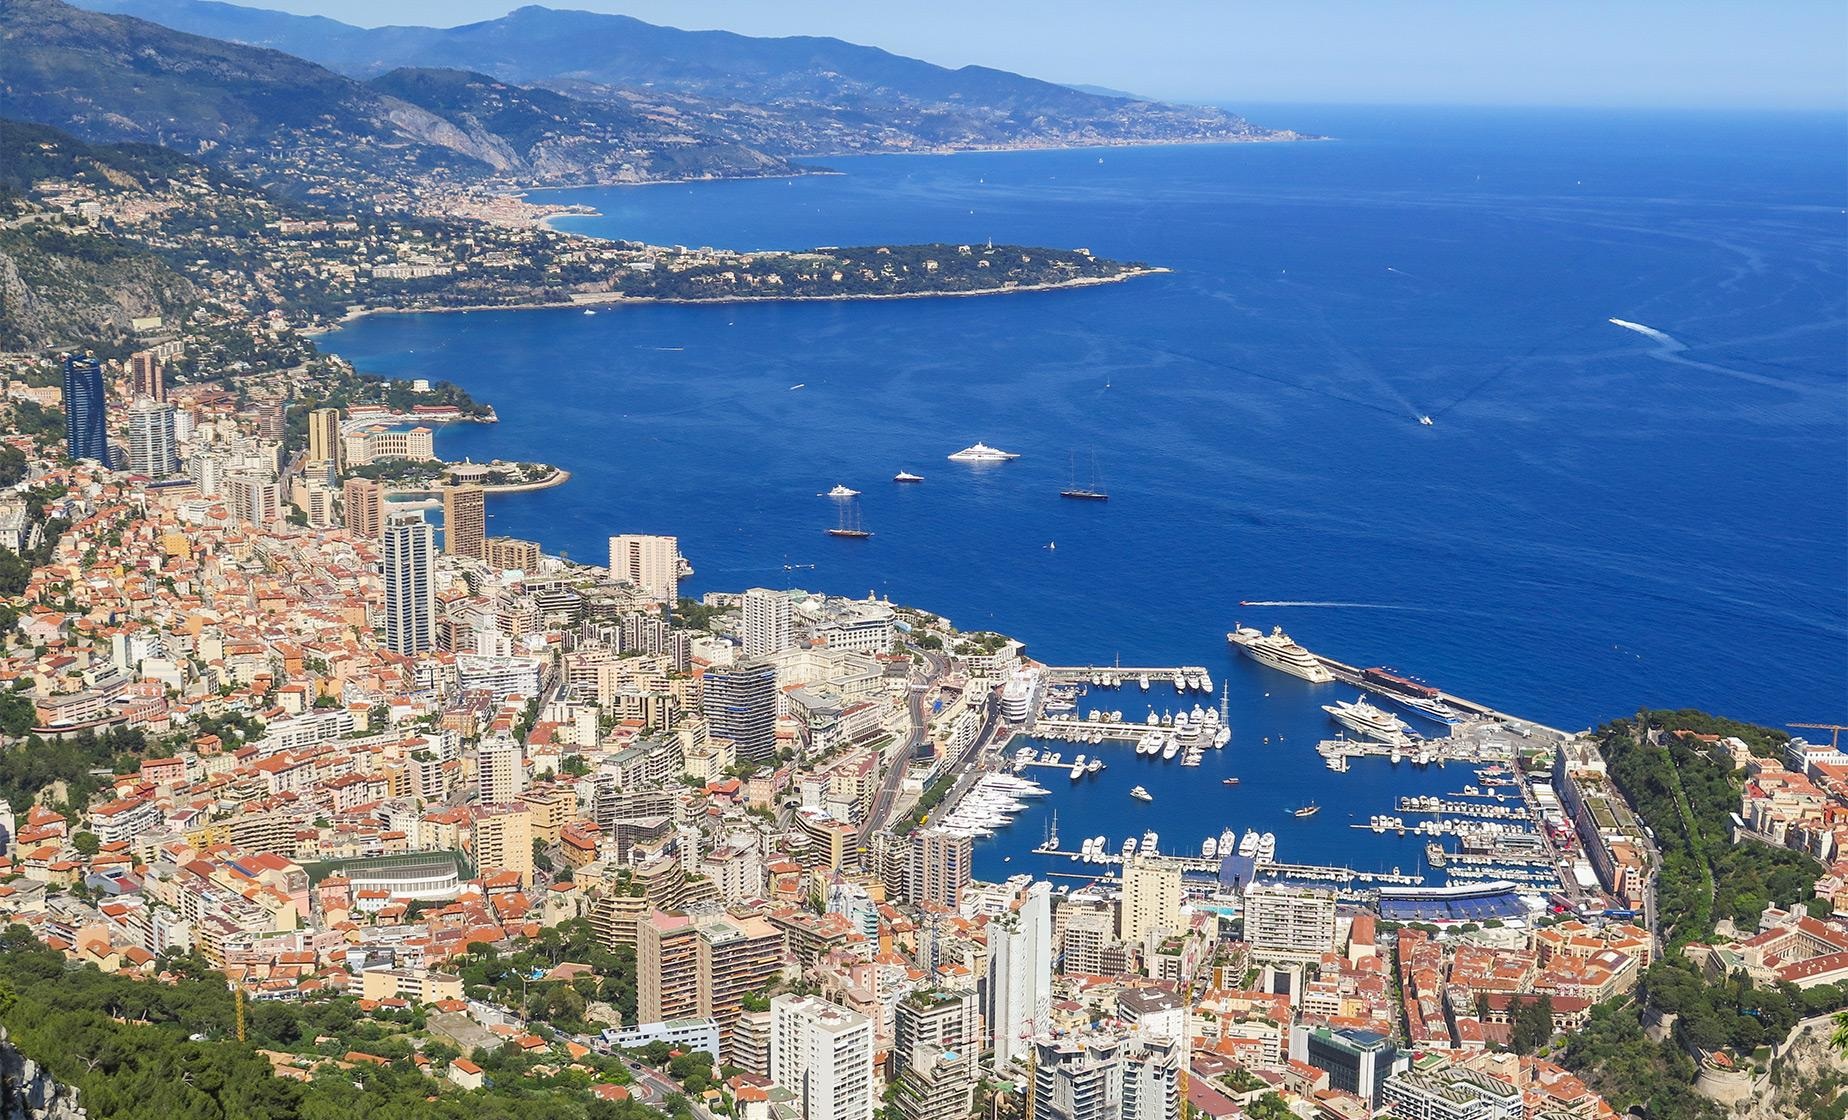 Exclusive Monte Carlo, Eze and La Turbie Tour (French Riviera, Casino Square)